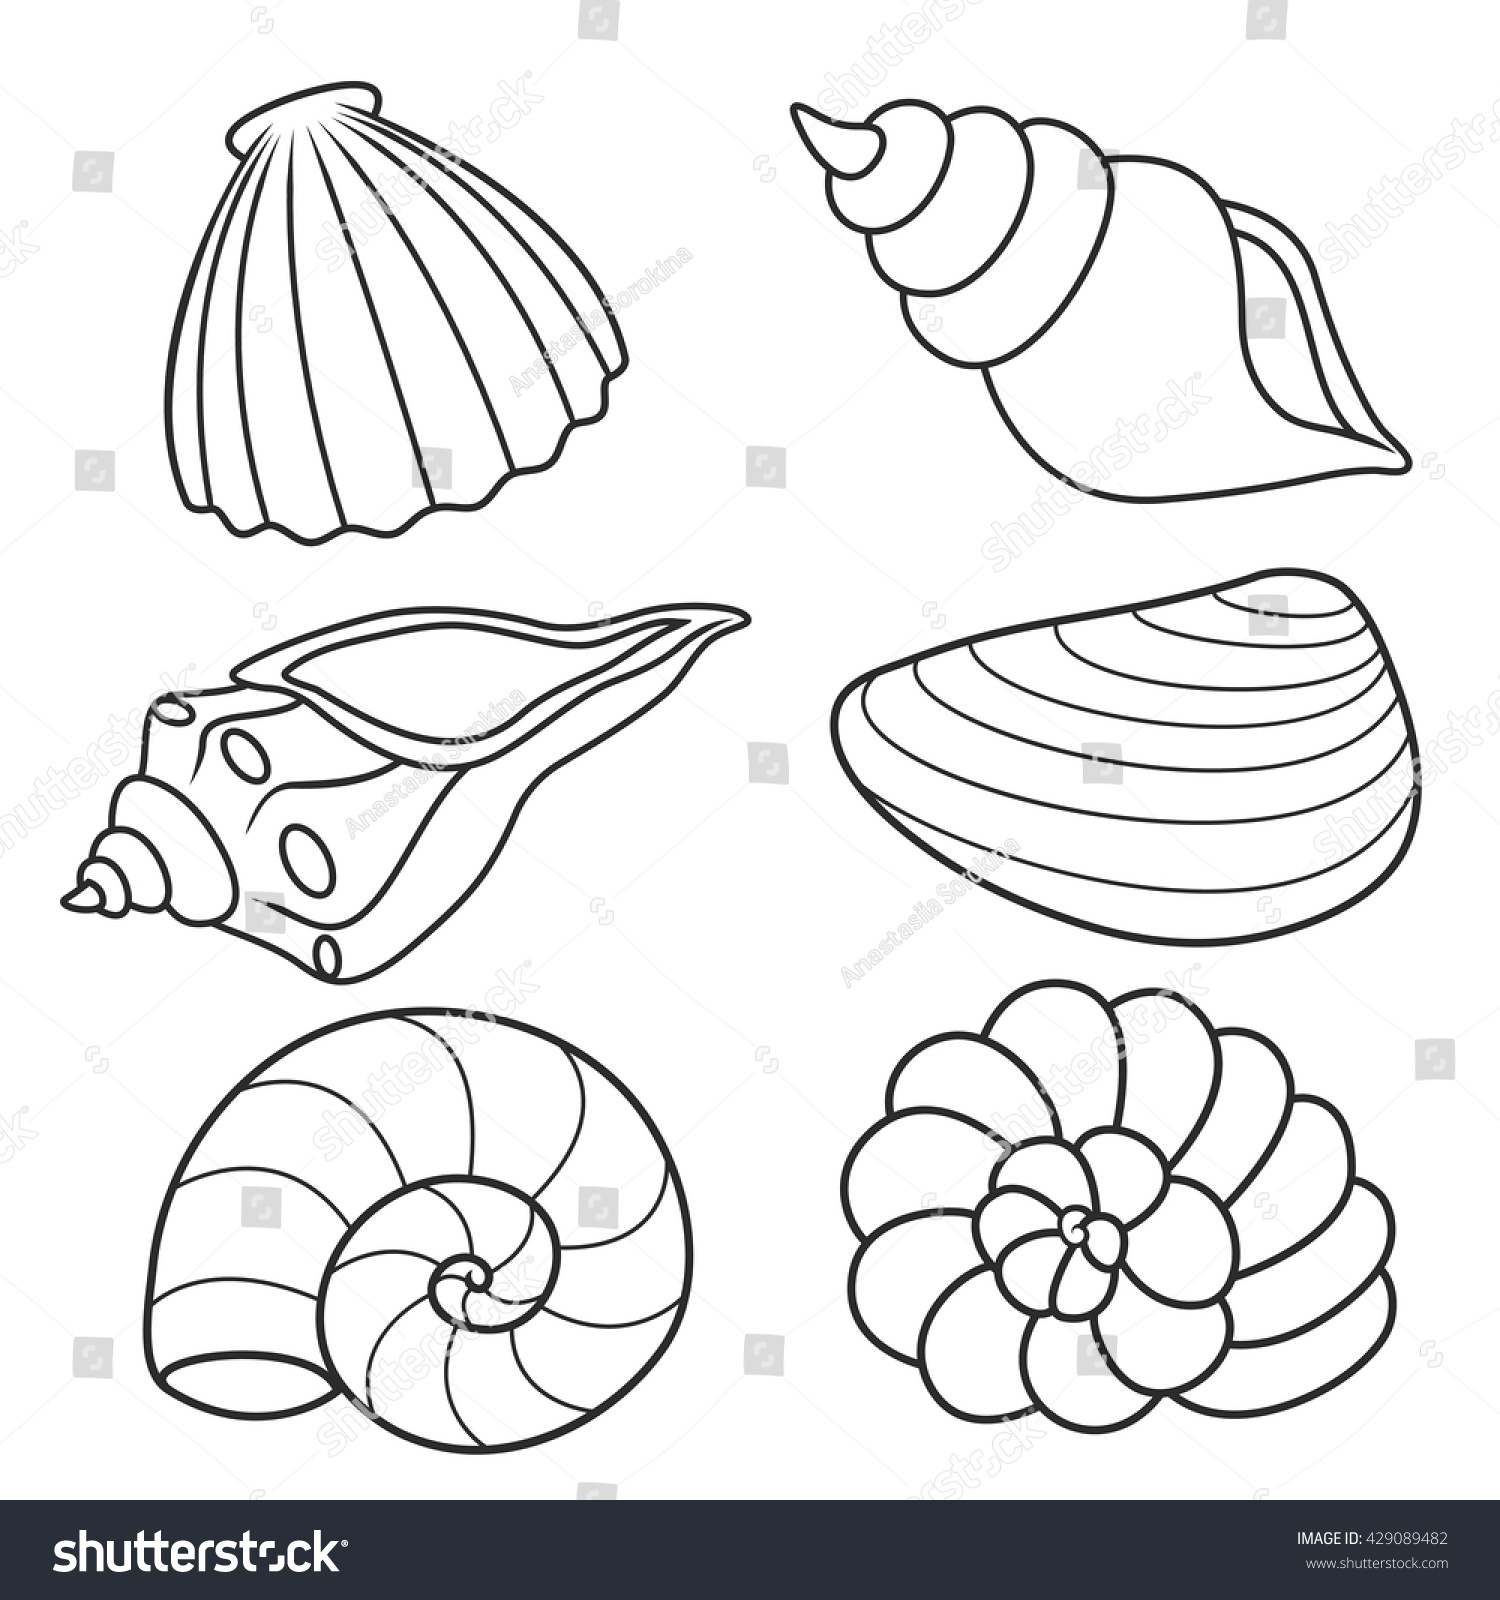 Seashells Coloring Bookset Stock Vector 429089482 ...